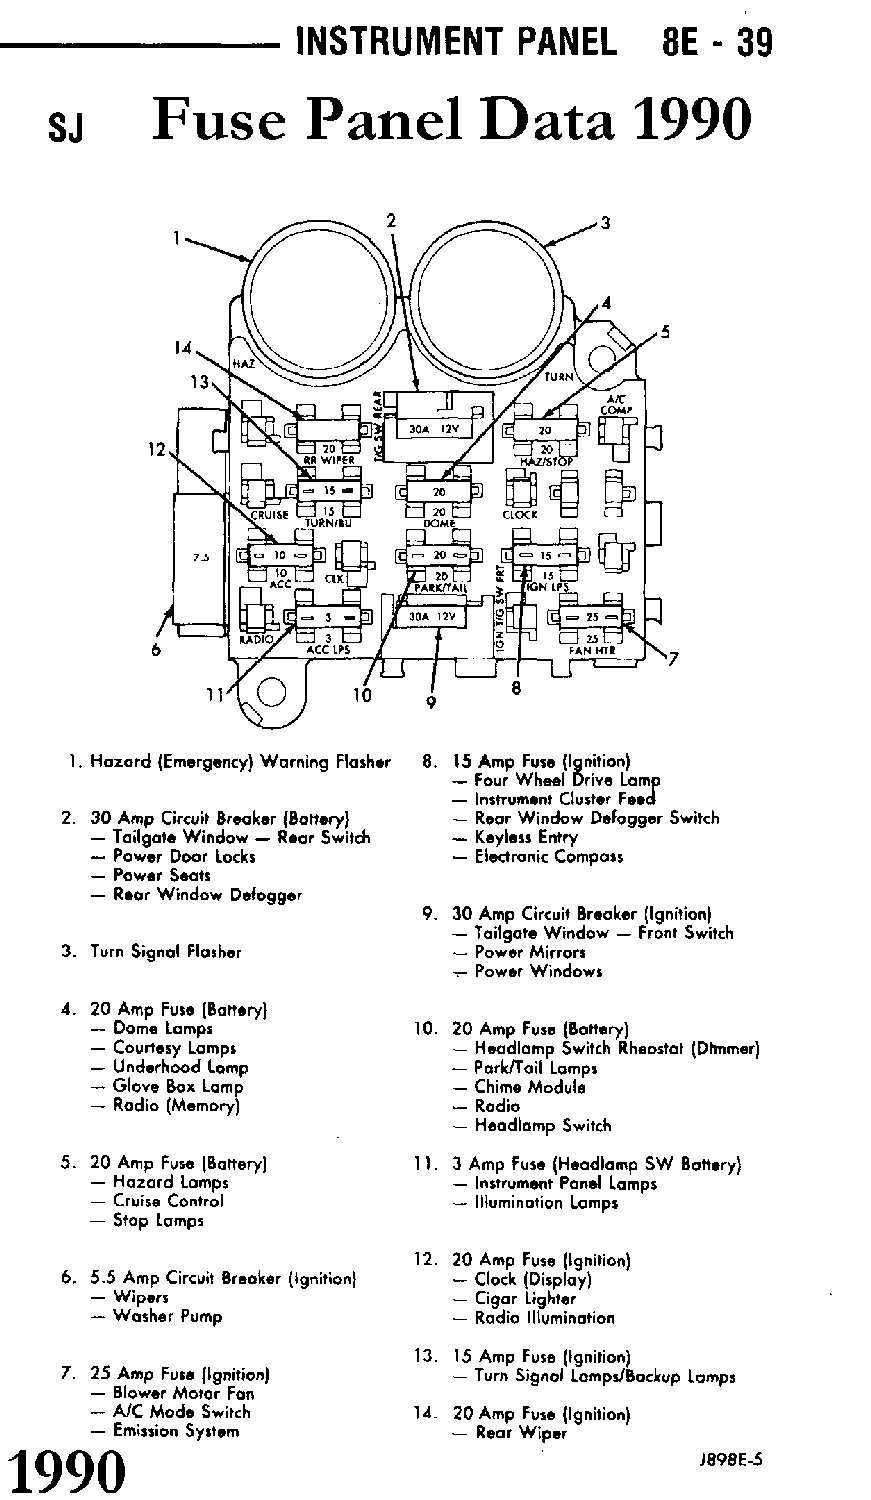 90 Fuse Panel tom 'oljeep' collins fsj wiring page 1990 Jeep Grand Cherokee at arjmand.co